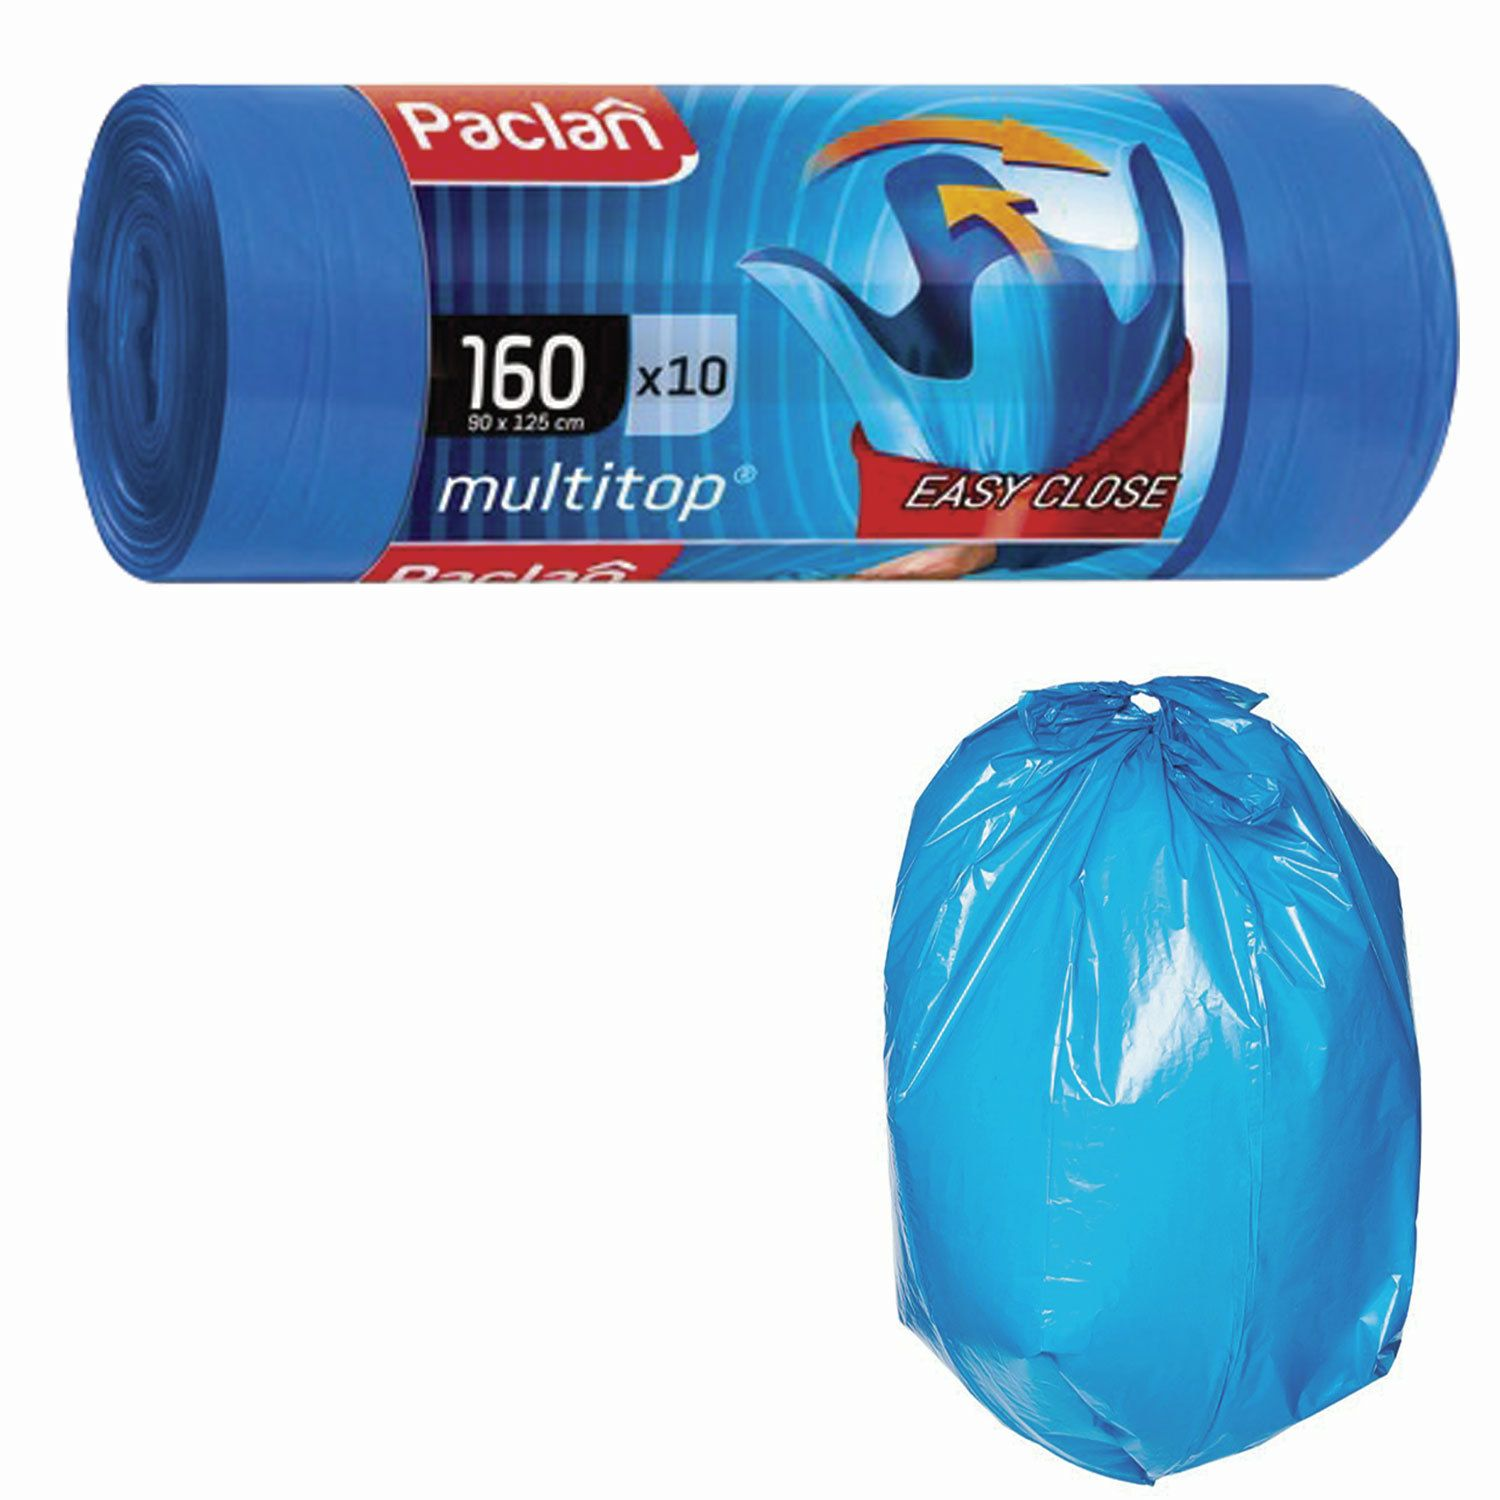 "PACLAN / Garbage bags ""Multitop"" 160 l with ears, blue, LDPE, 30 microns, 90x125 cm, roll of 10 pcs."